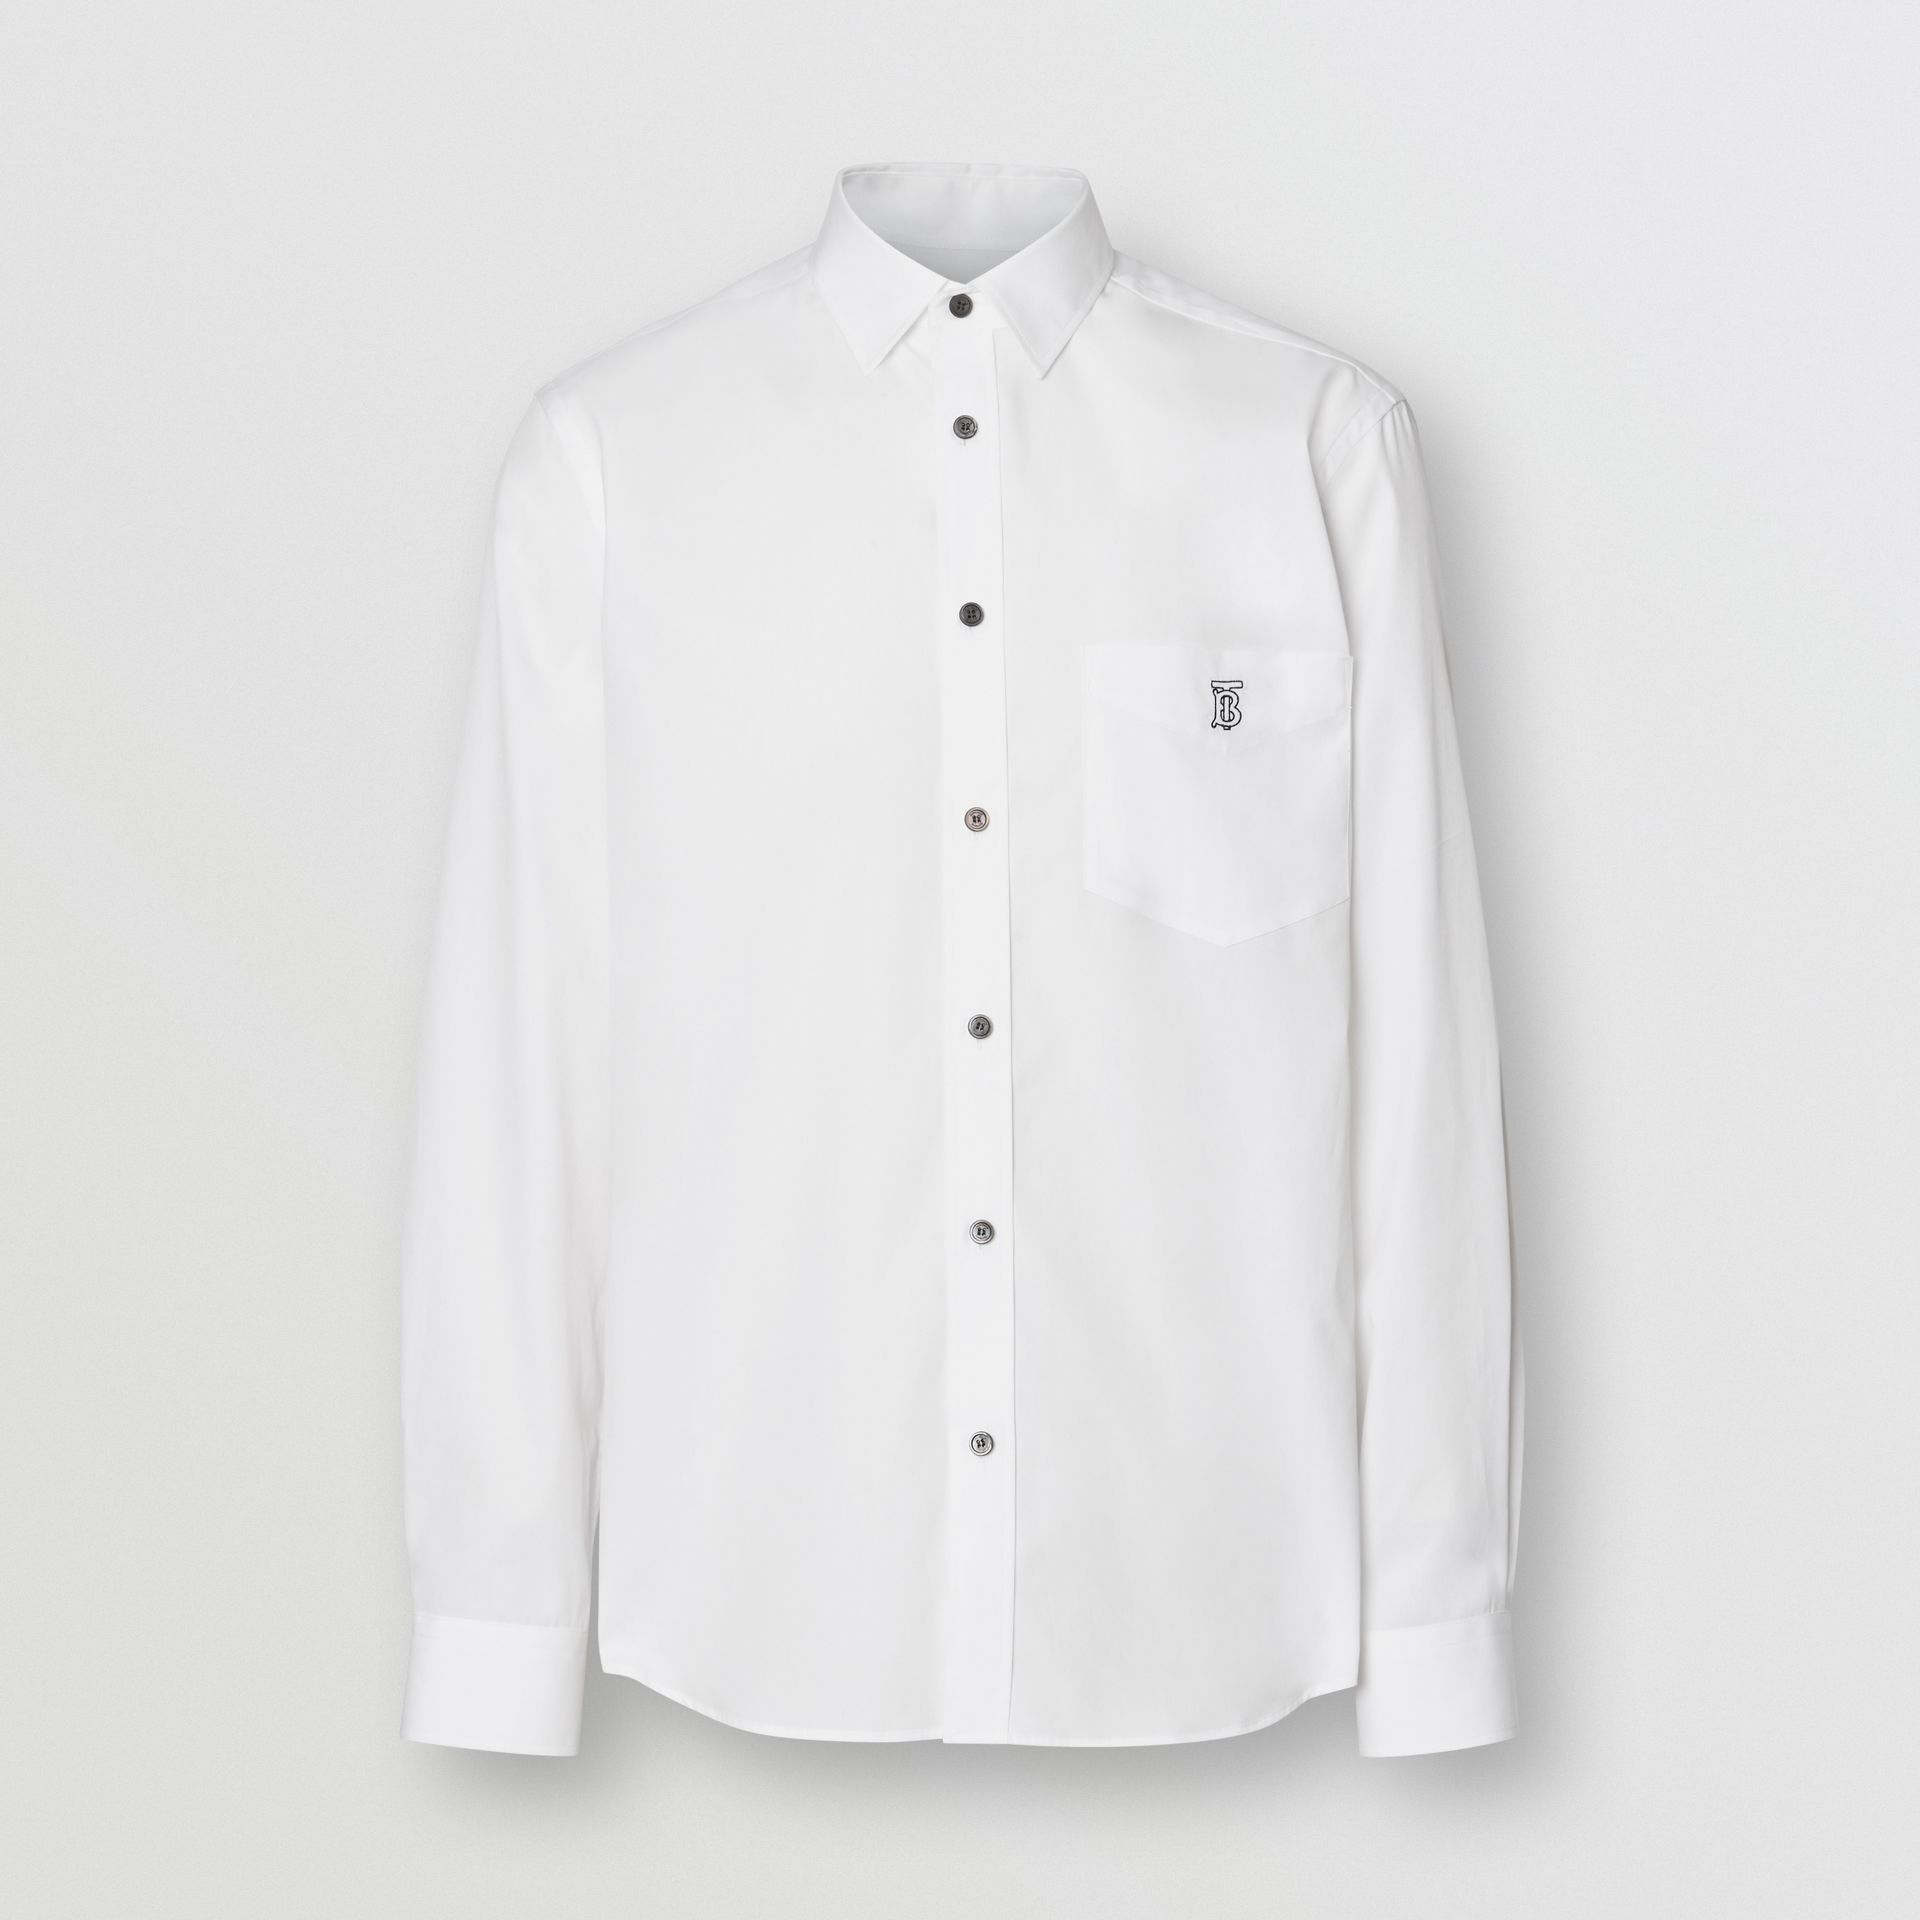 Monogram Motif Stretch Cotton Poplin Shirt in White - Men | Burberry Australia - gallery image 3